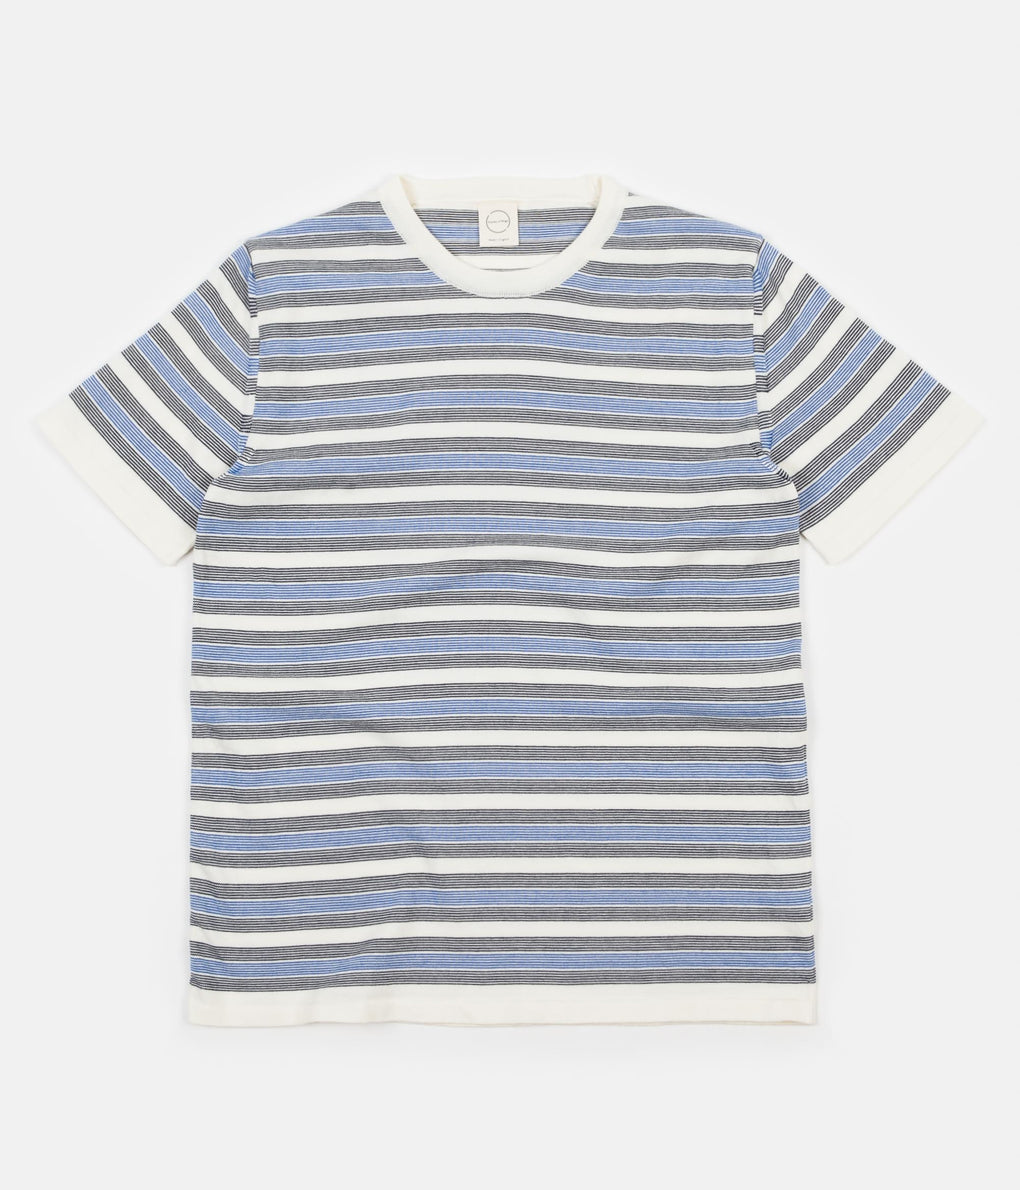 Country Of Origin Deck Chair Knitted T-Shirt - Navy / Blue / Ecru